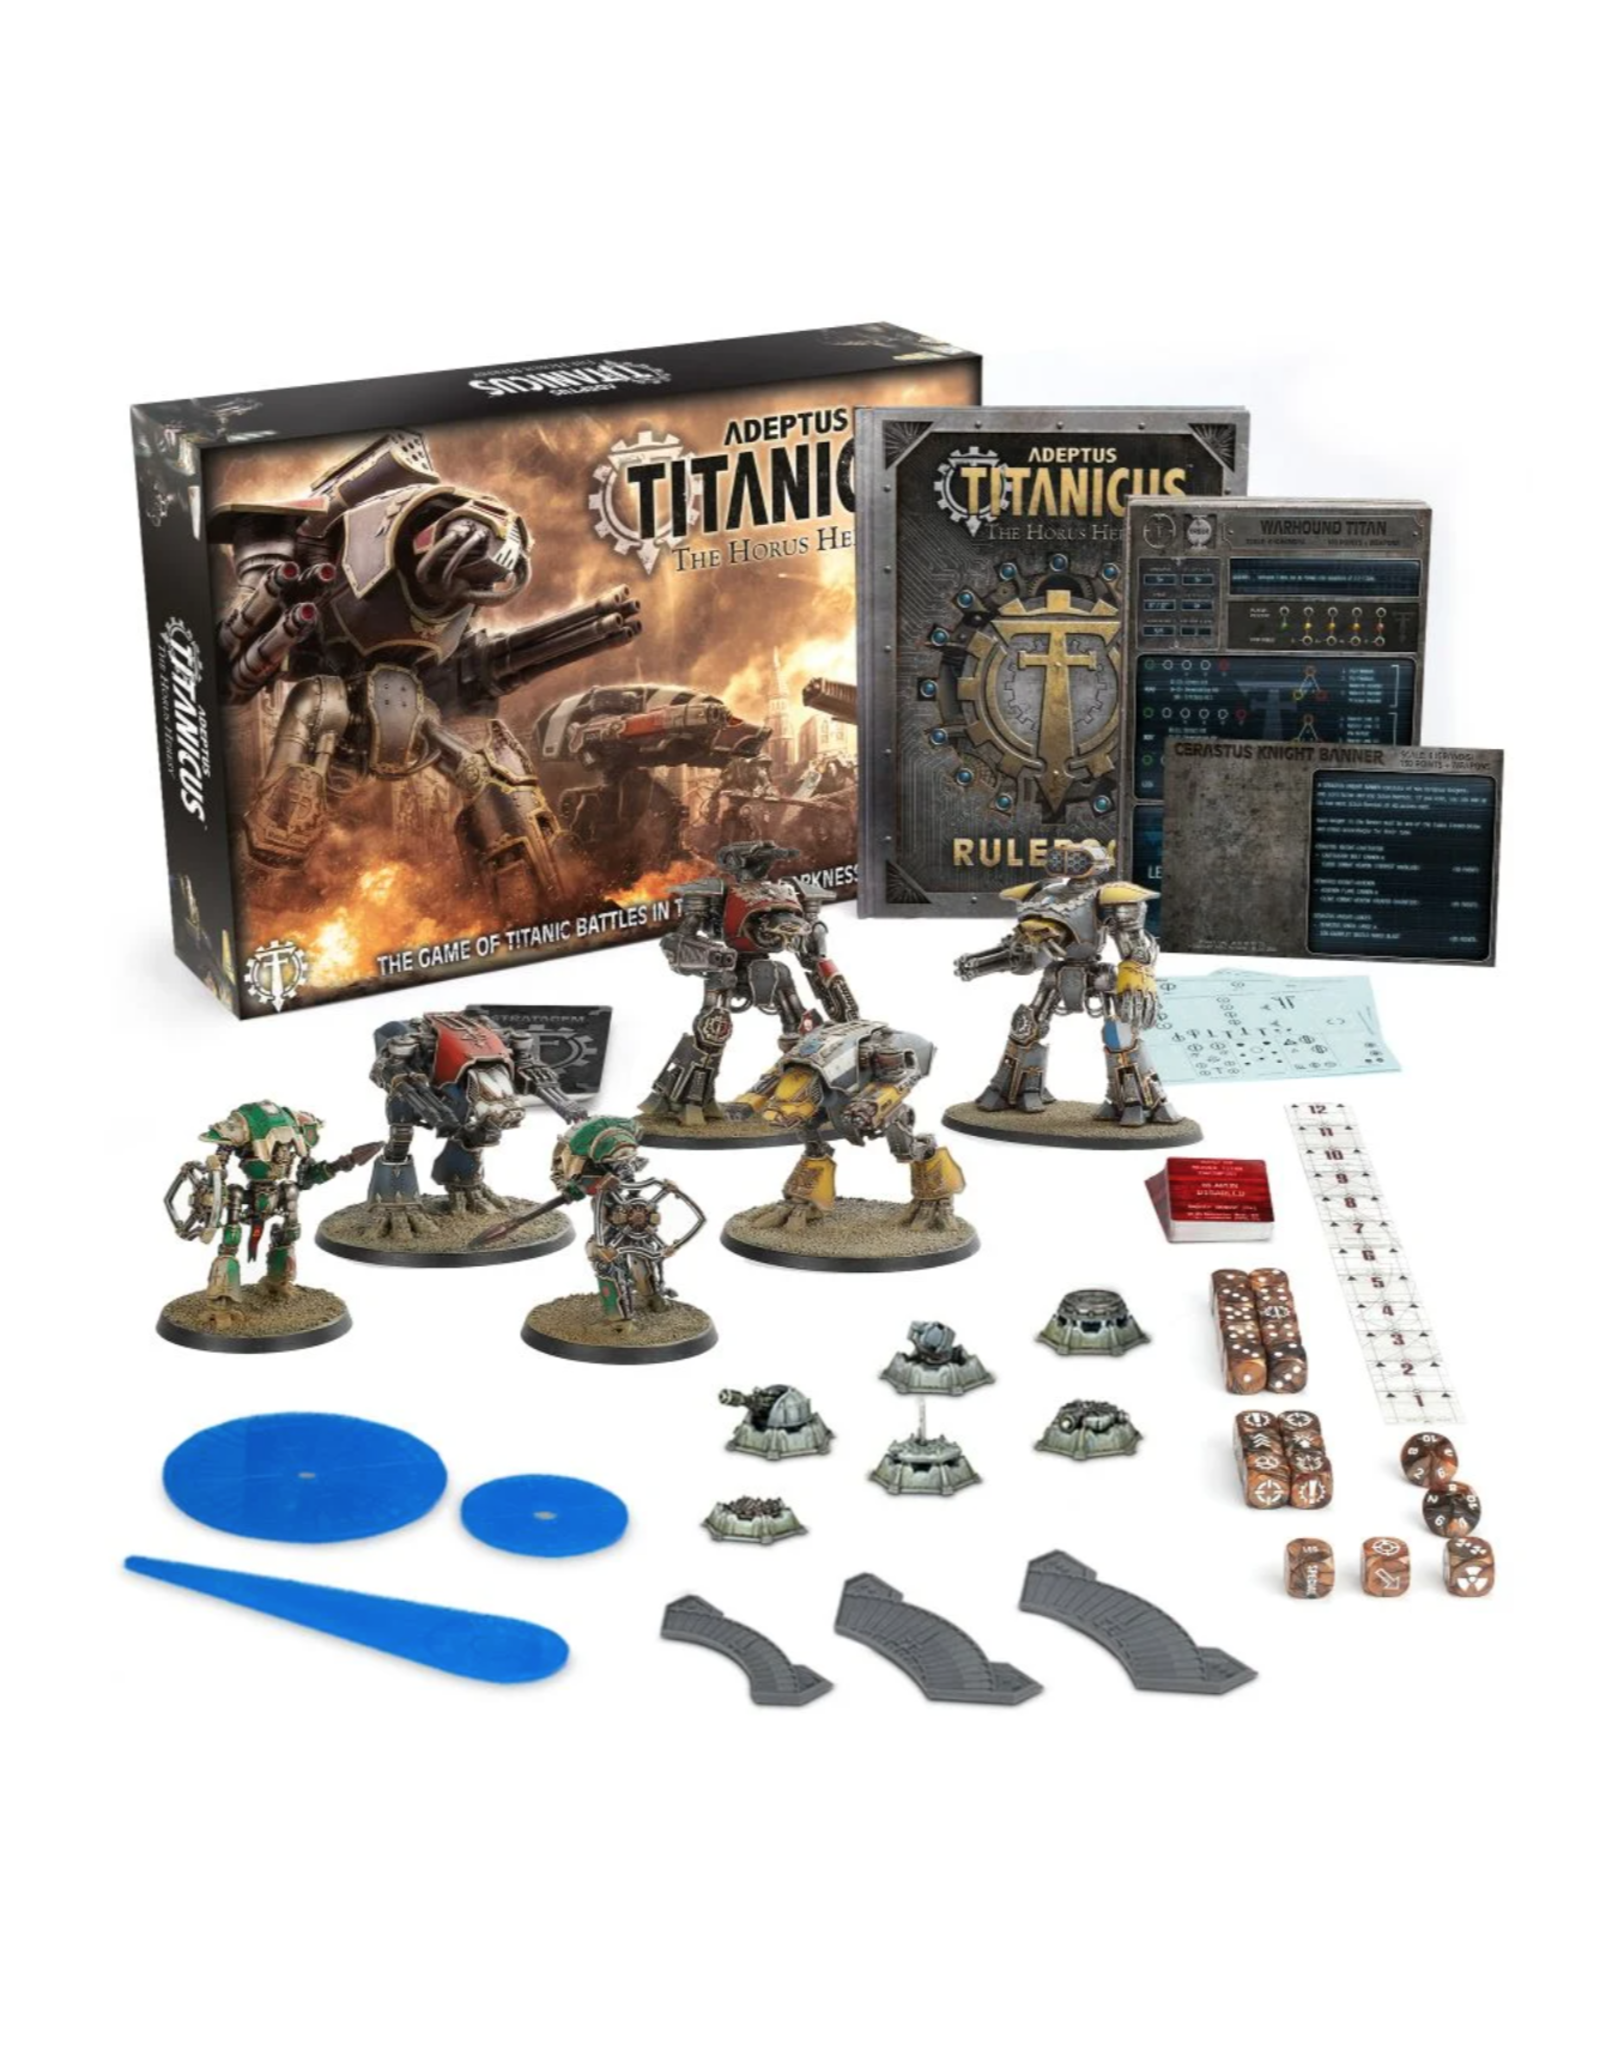 Warhammer 40K Adeptus Titanicus: The Horus Heresy Core Set